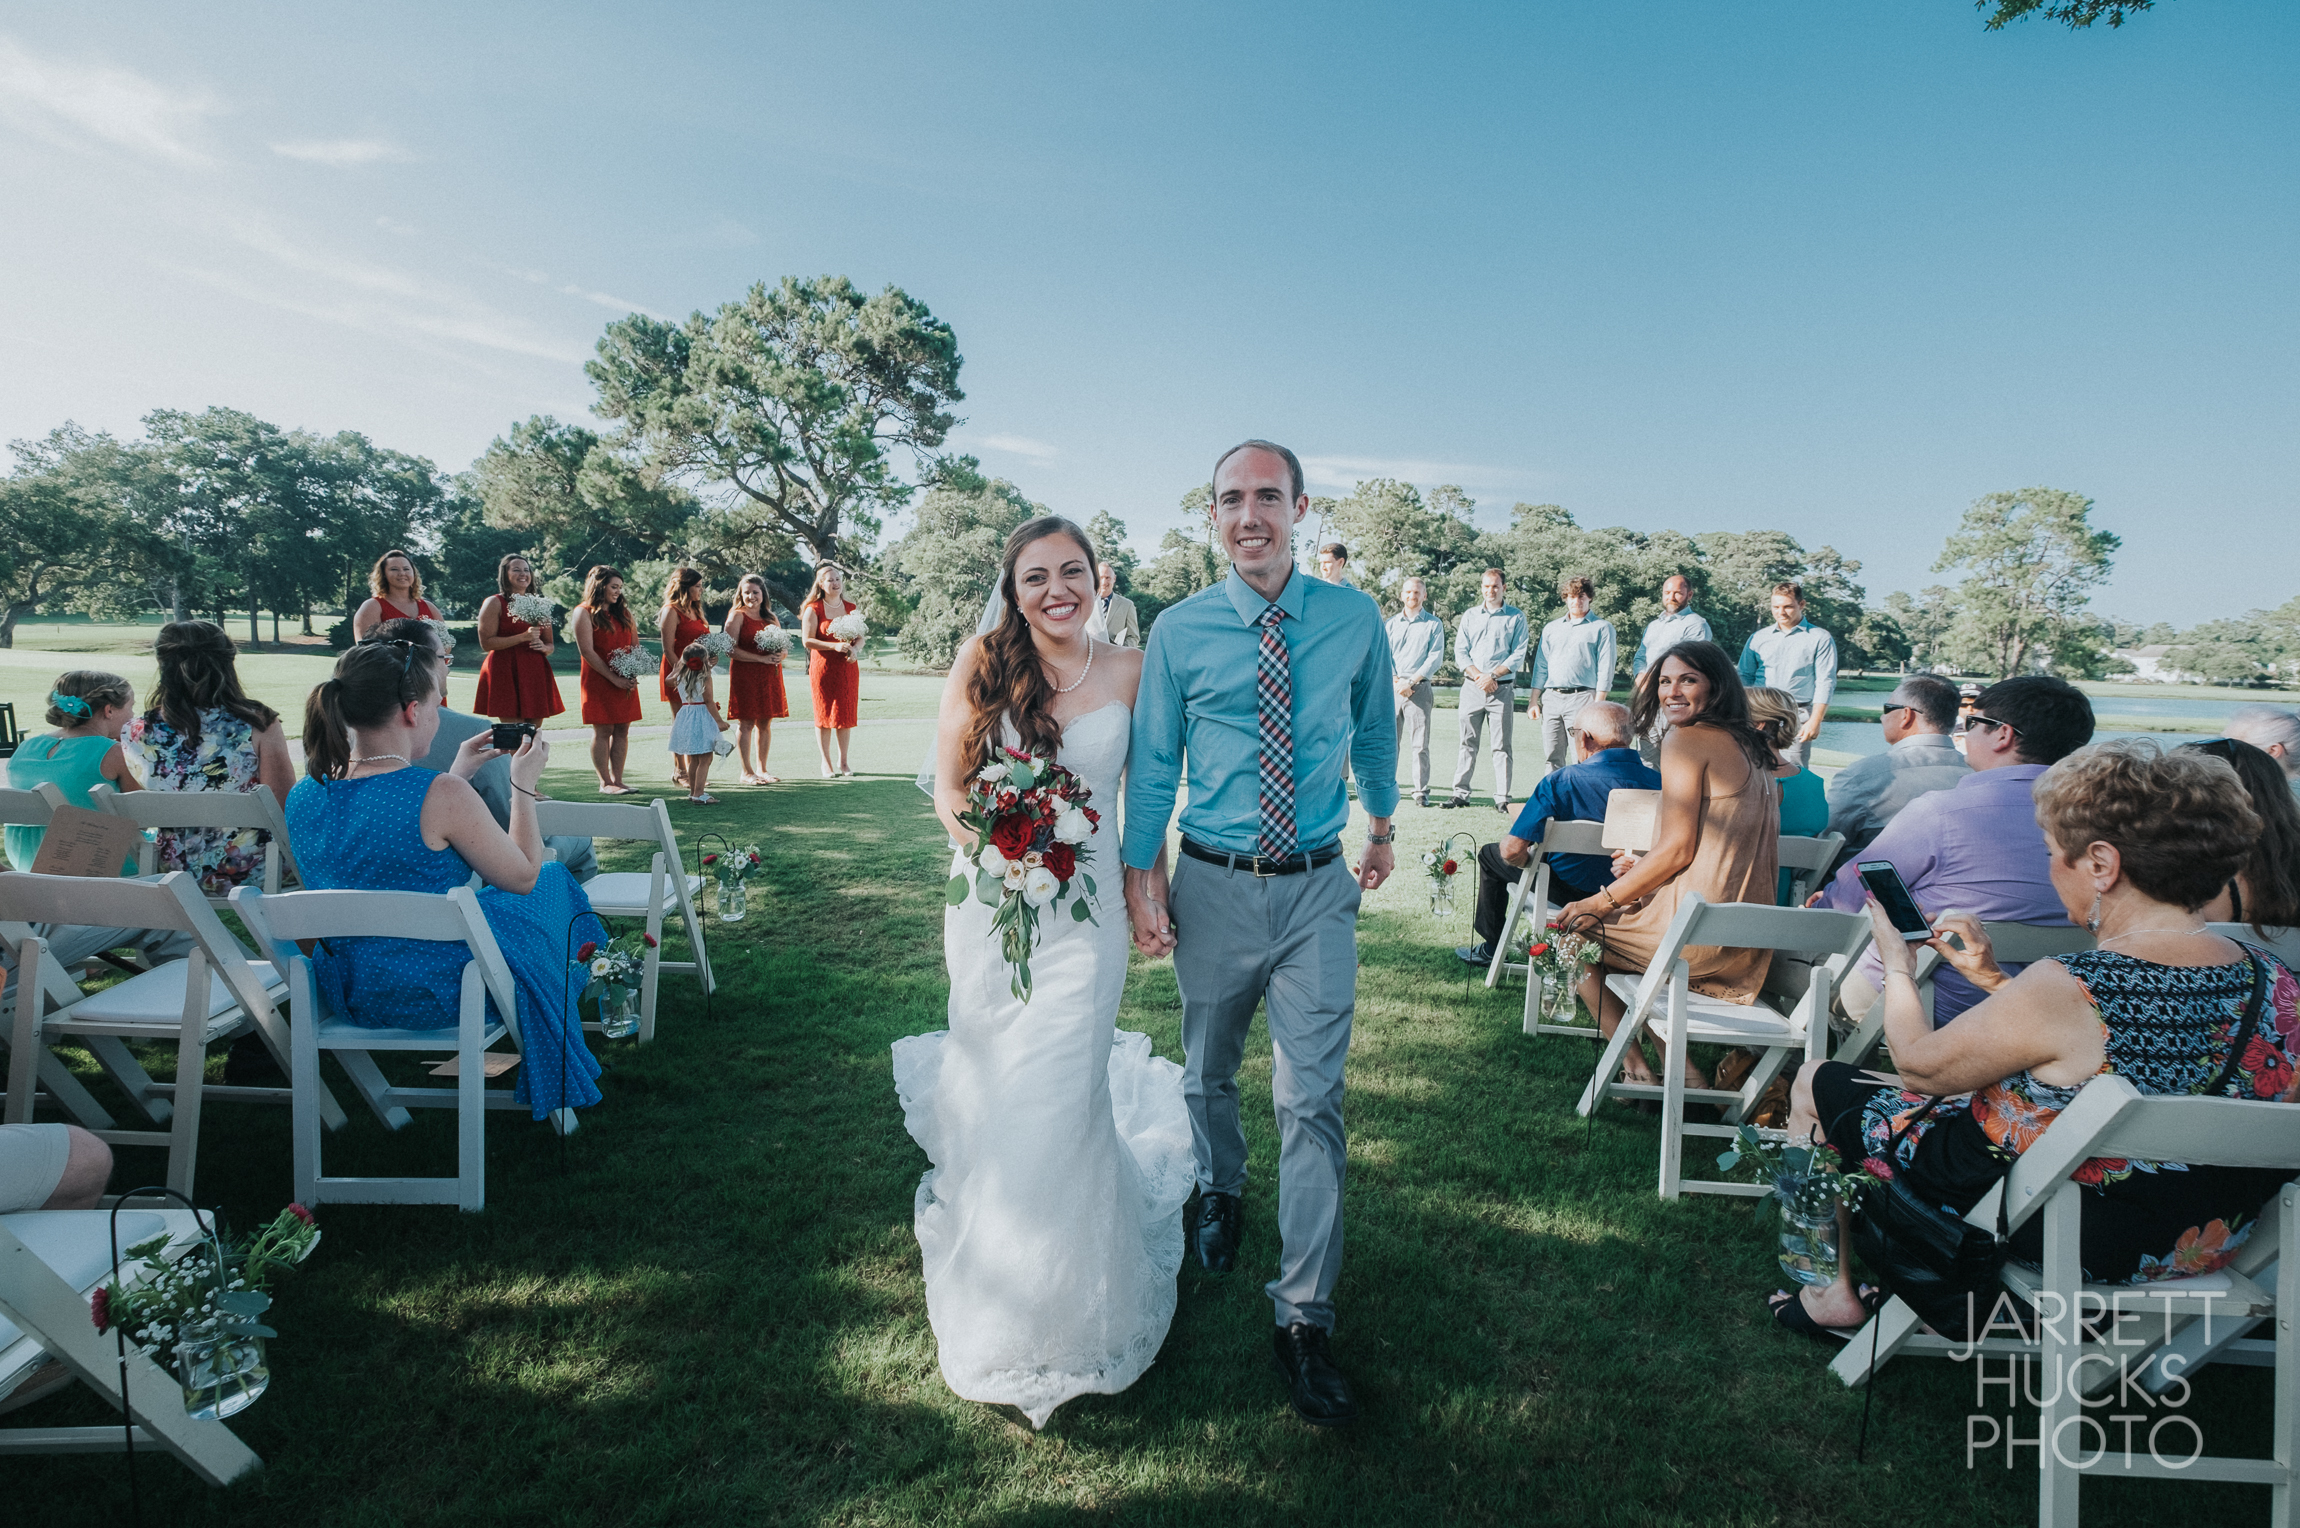 Austin and Nikki Wedding-60.jpg